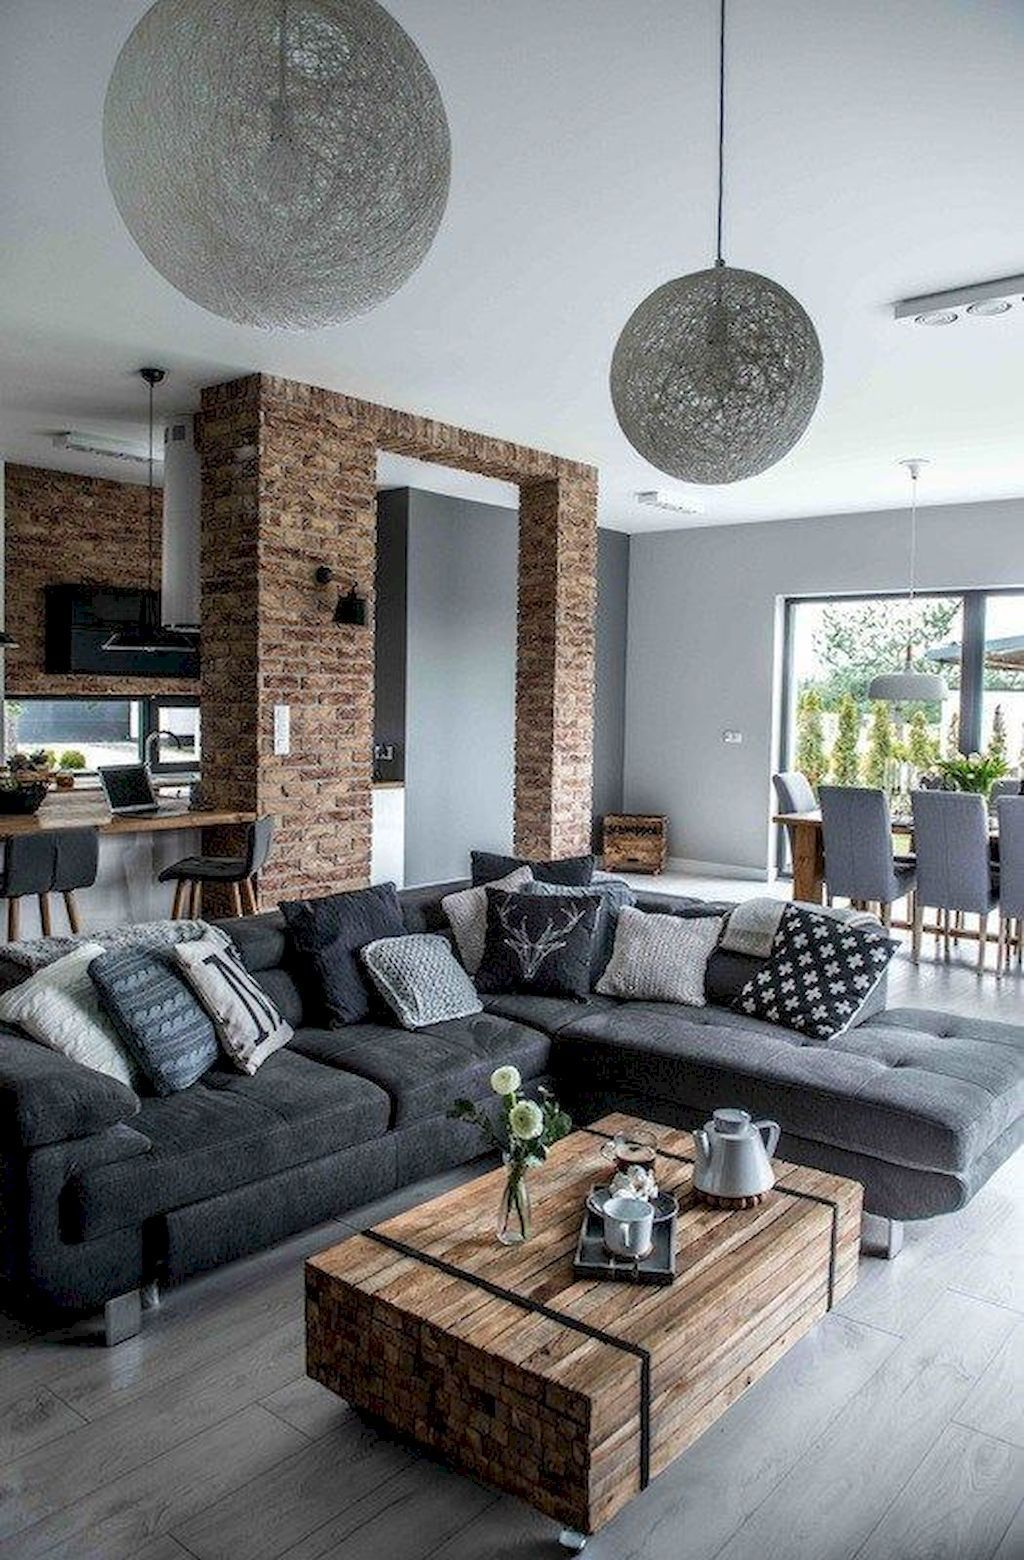 cool 50 best rustic apartment living room decor ideas and makeover httpscoachdecor